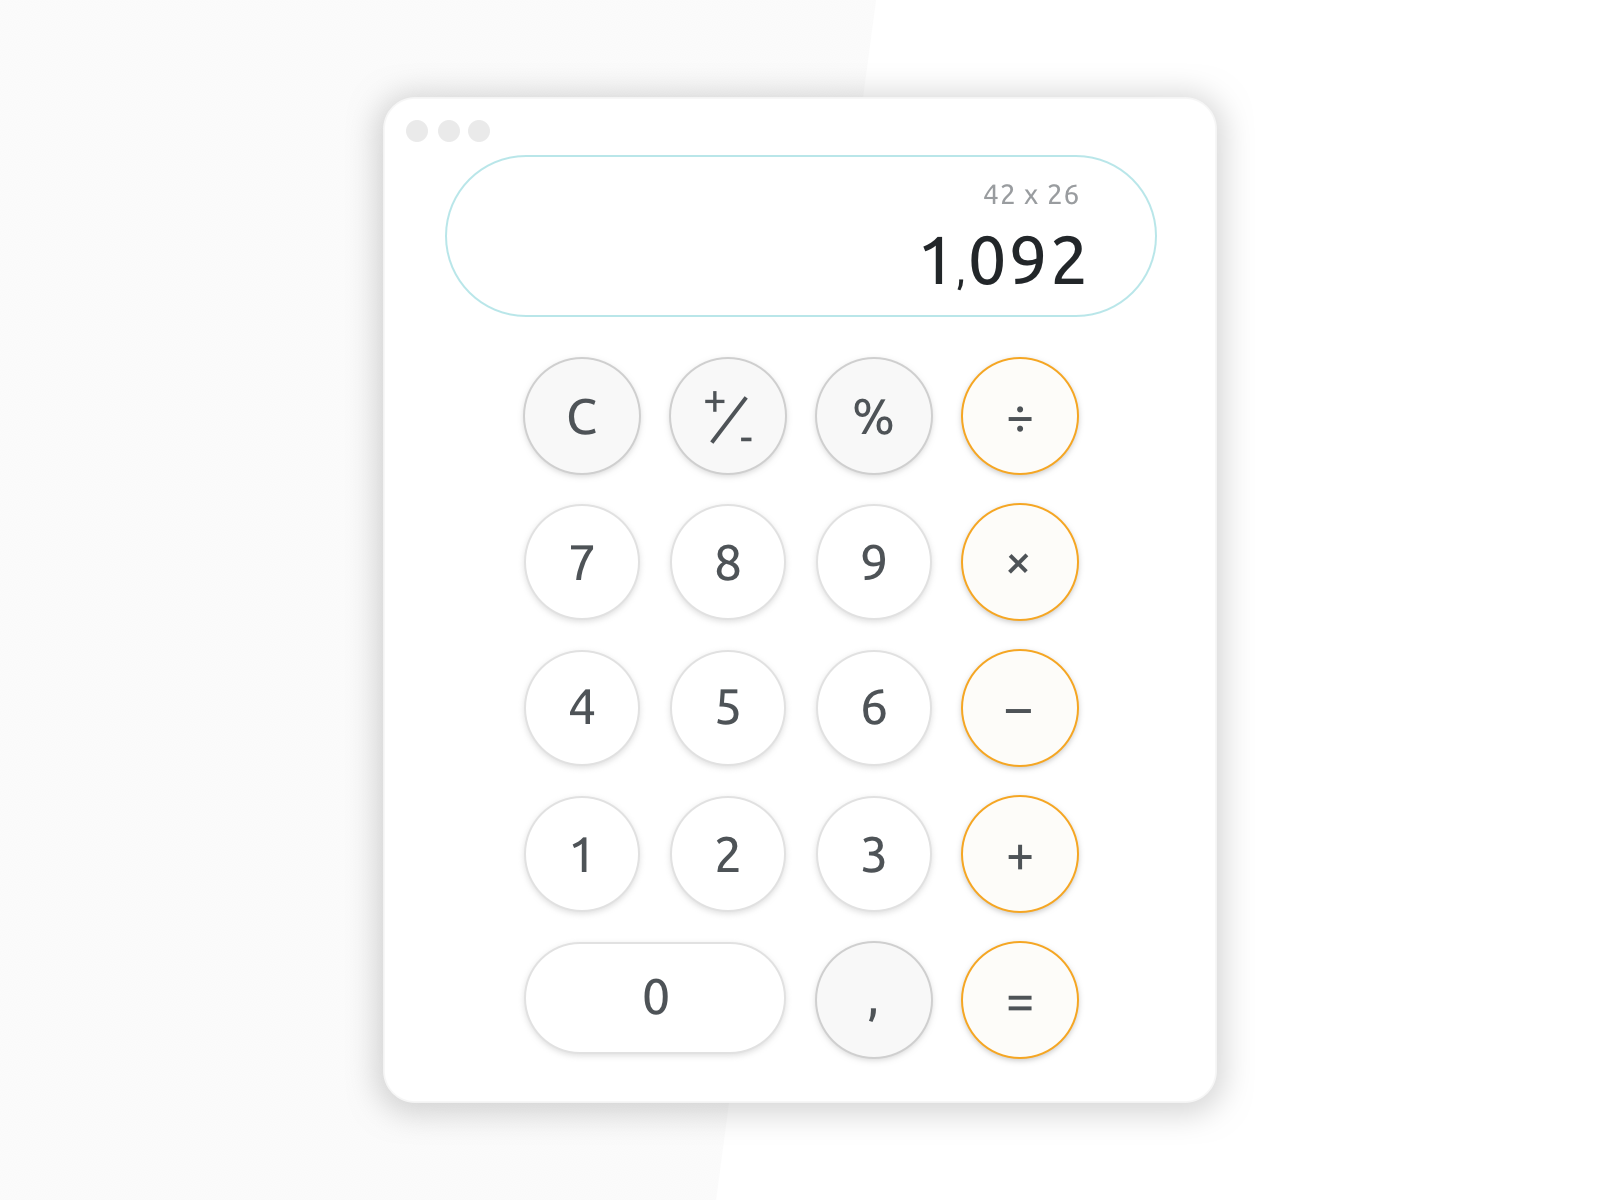 With this challenge I wanted to create a widget that's simple and elegant using a light ui.